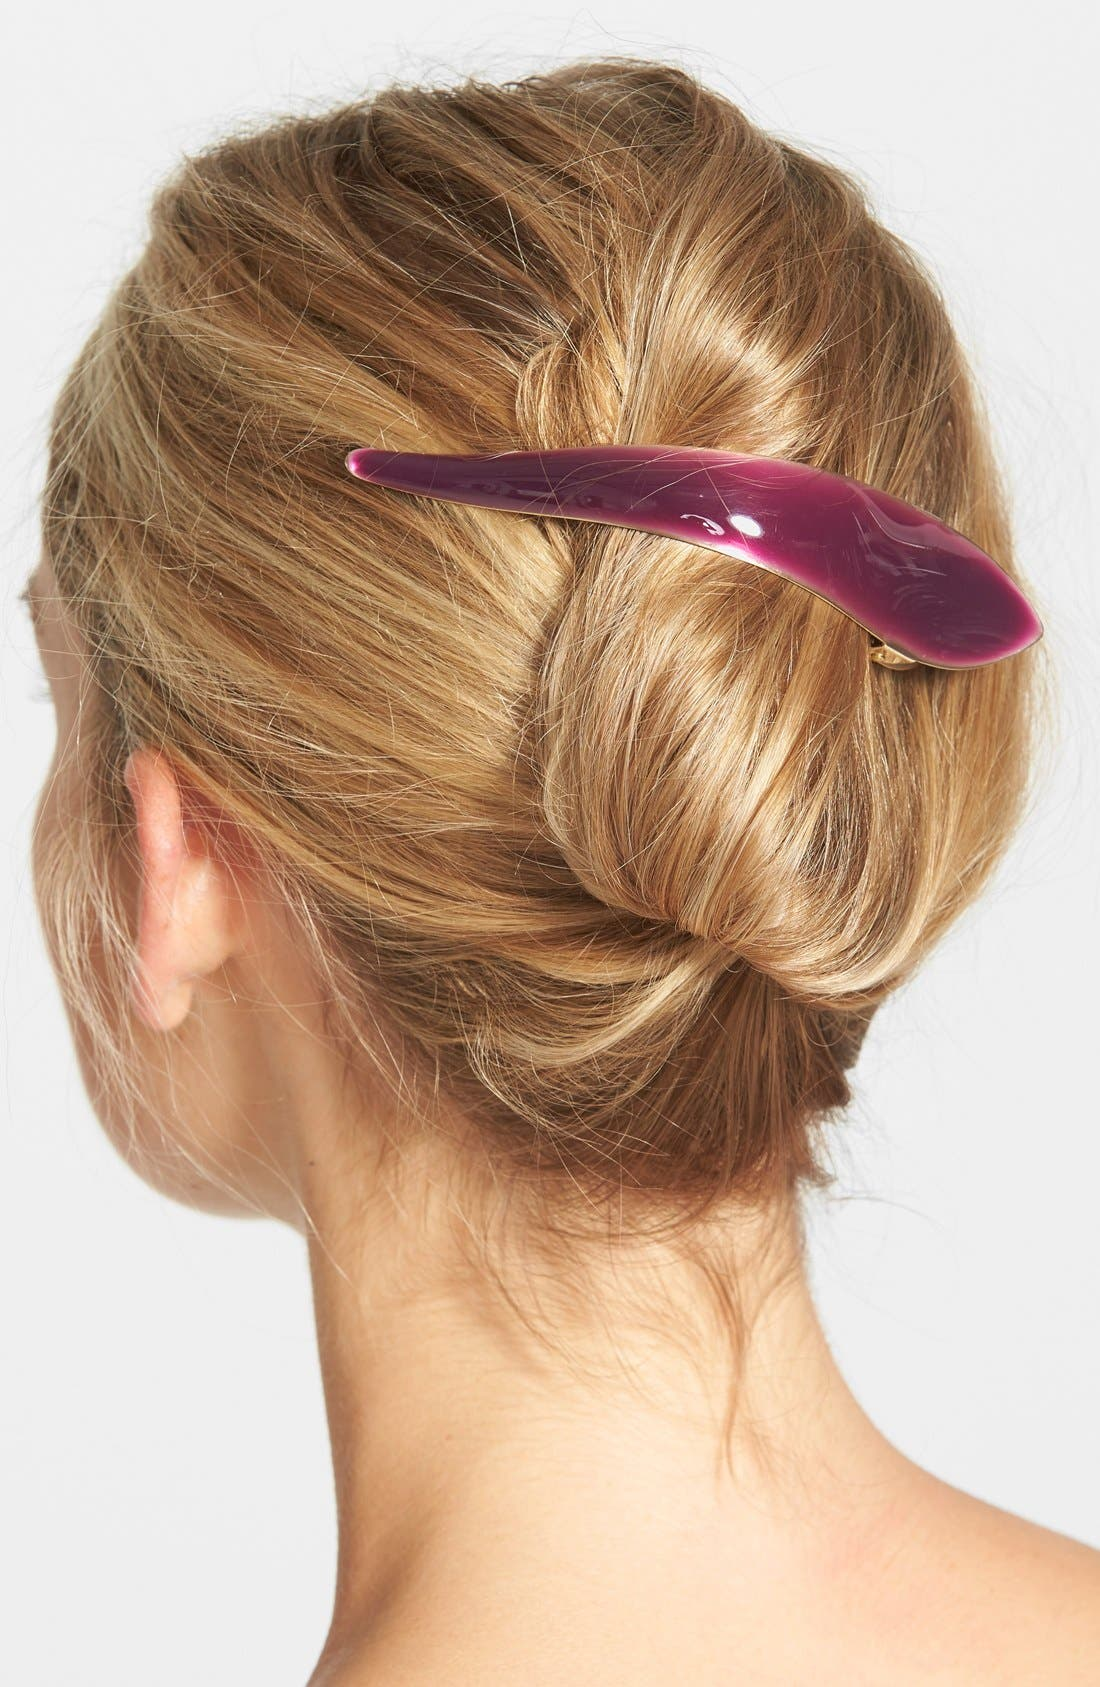 Alternate Image 1 Selected - Ficcare Maximas Silky Hair Clip